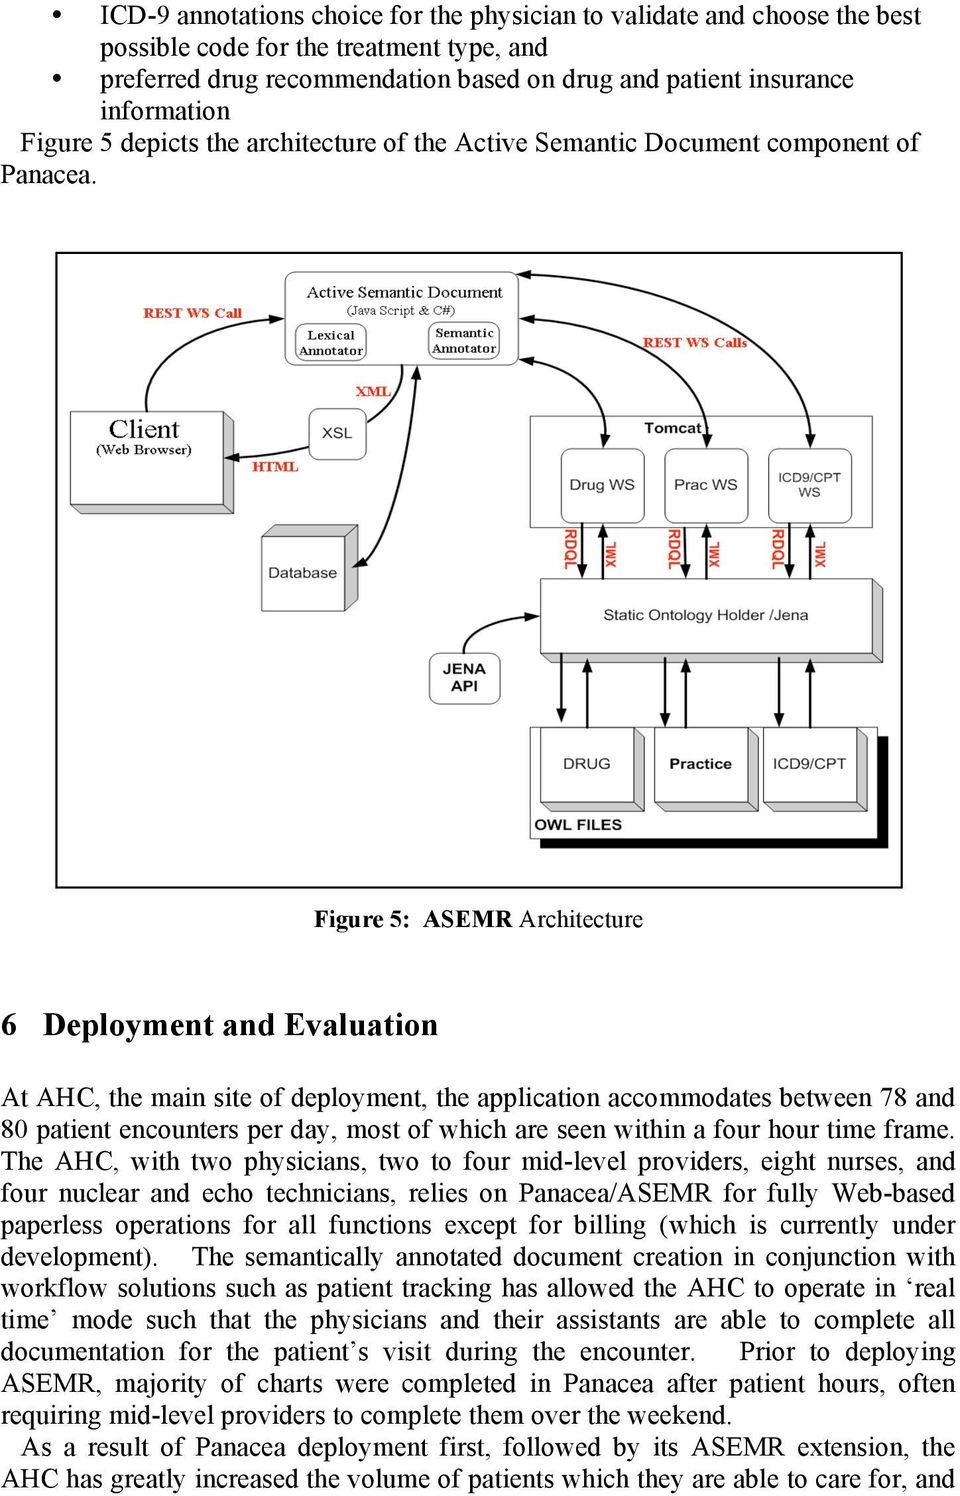 Figure 5: ASEMR Architecture 6 Deployment and Evaluation At AHC, the main site of deployment, the application accommodates between 78 and 80 patient encounters per day, most of which are seen within